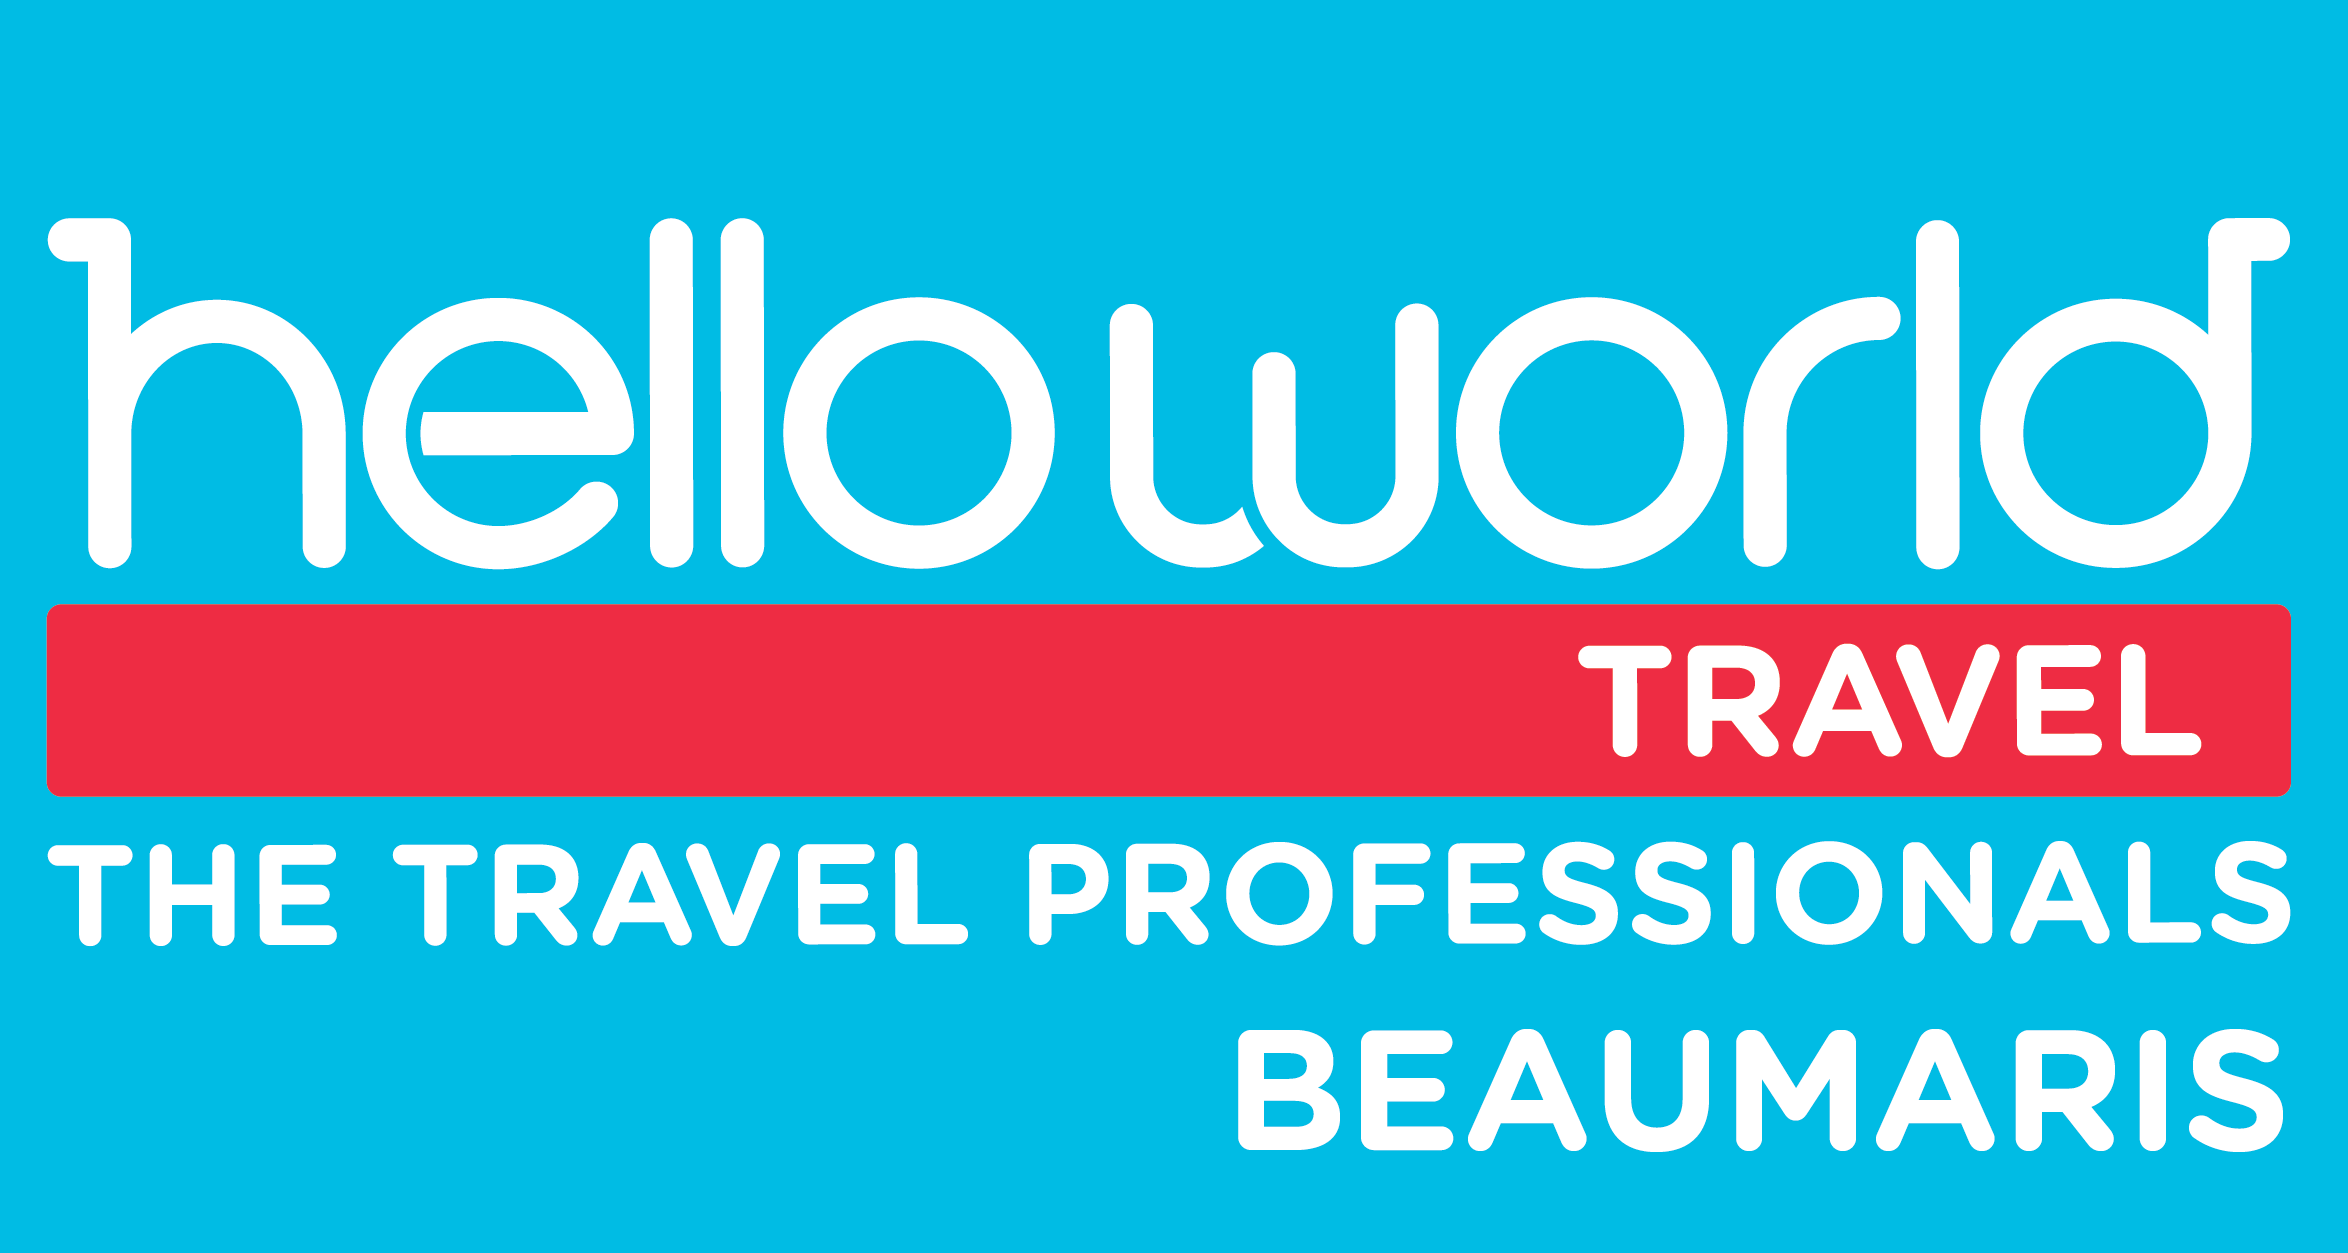 Helloworld Travel Beaumaris Logo